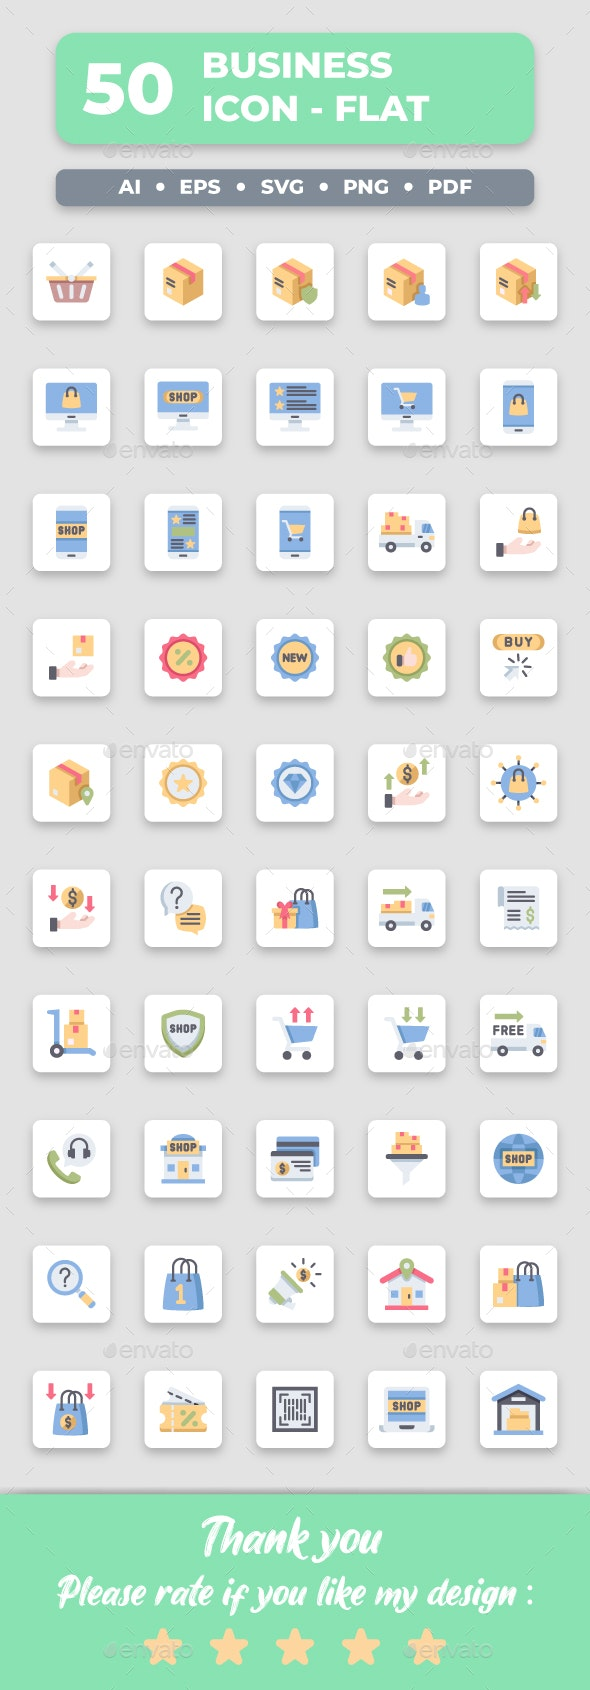 Ecommerce - Flat Collection Icon Set - Business Icons